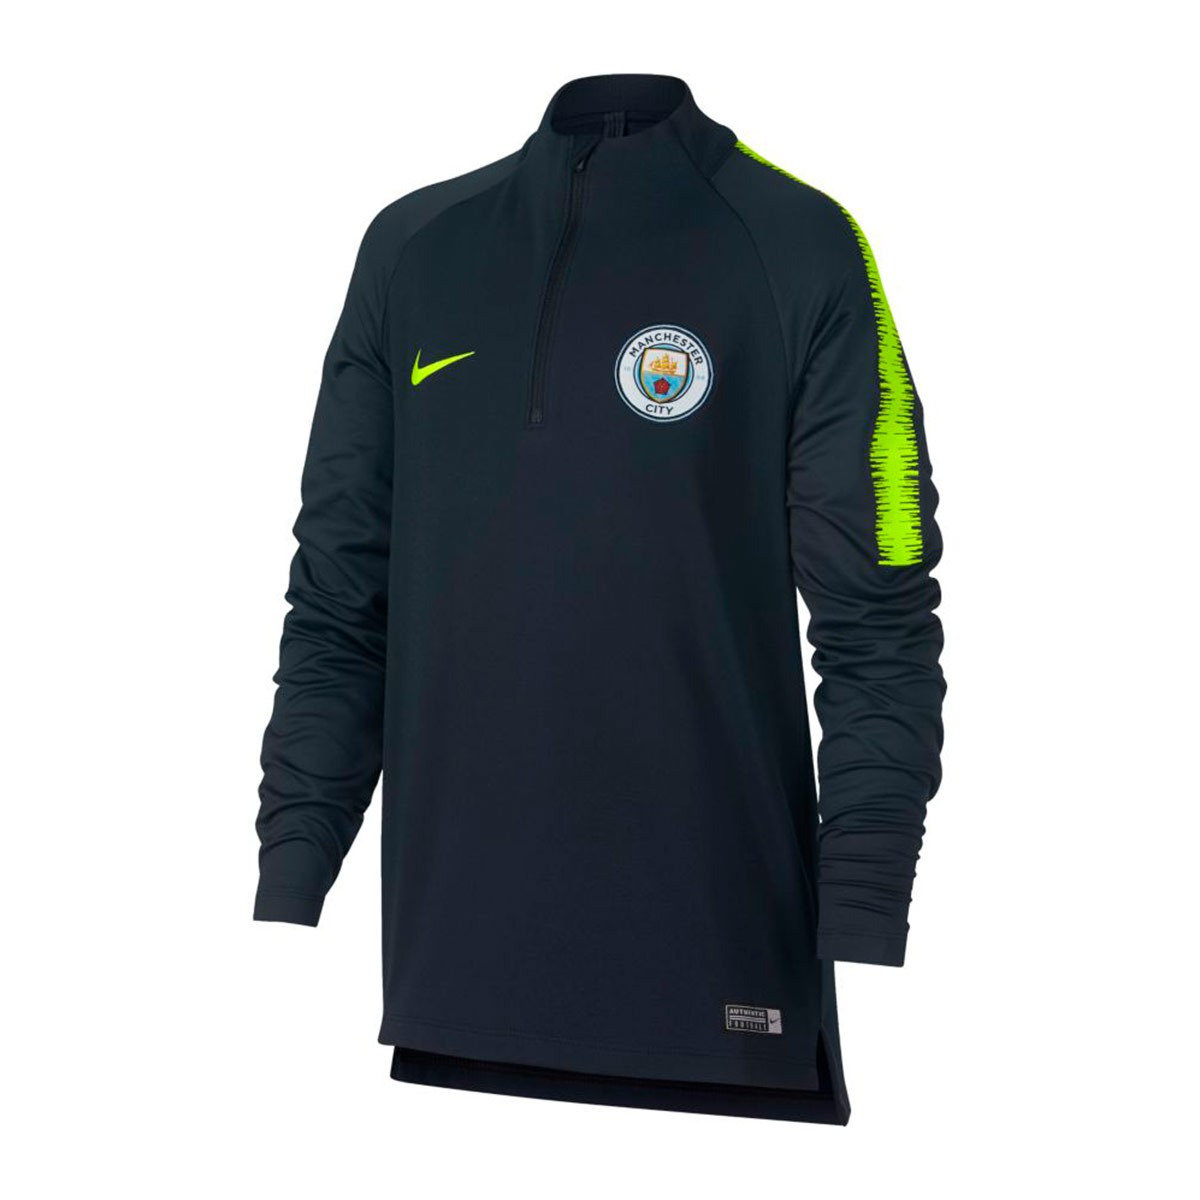 e28b9c286 Sweat Nike Manchester City FC Dry Squad 2018-2019 enfant Dark obsidian-Volt  - Boutique de football Fútbol Emotion